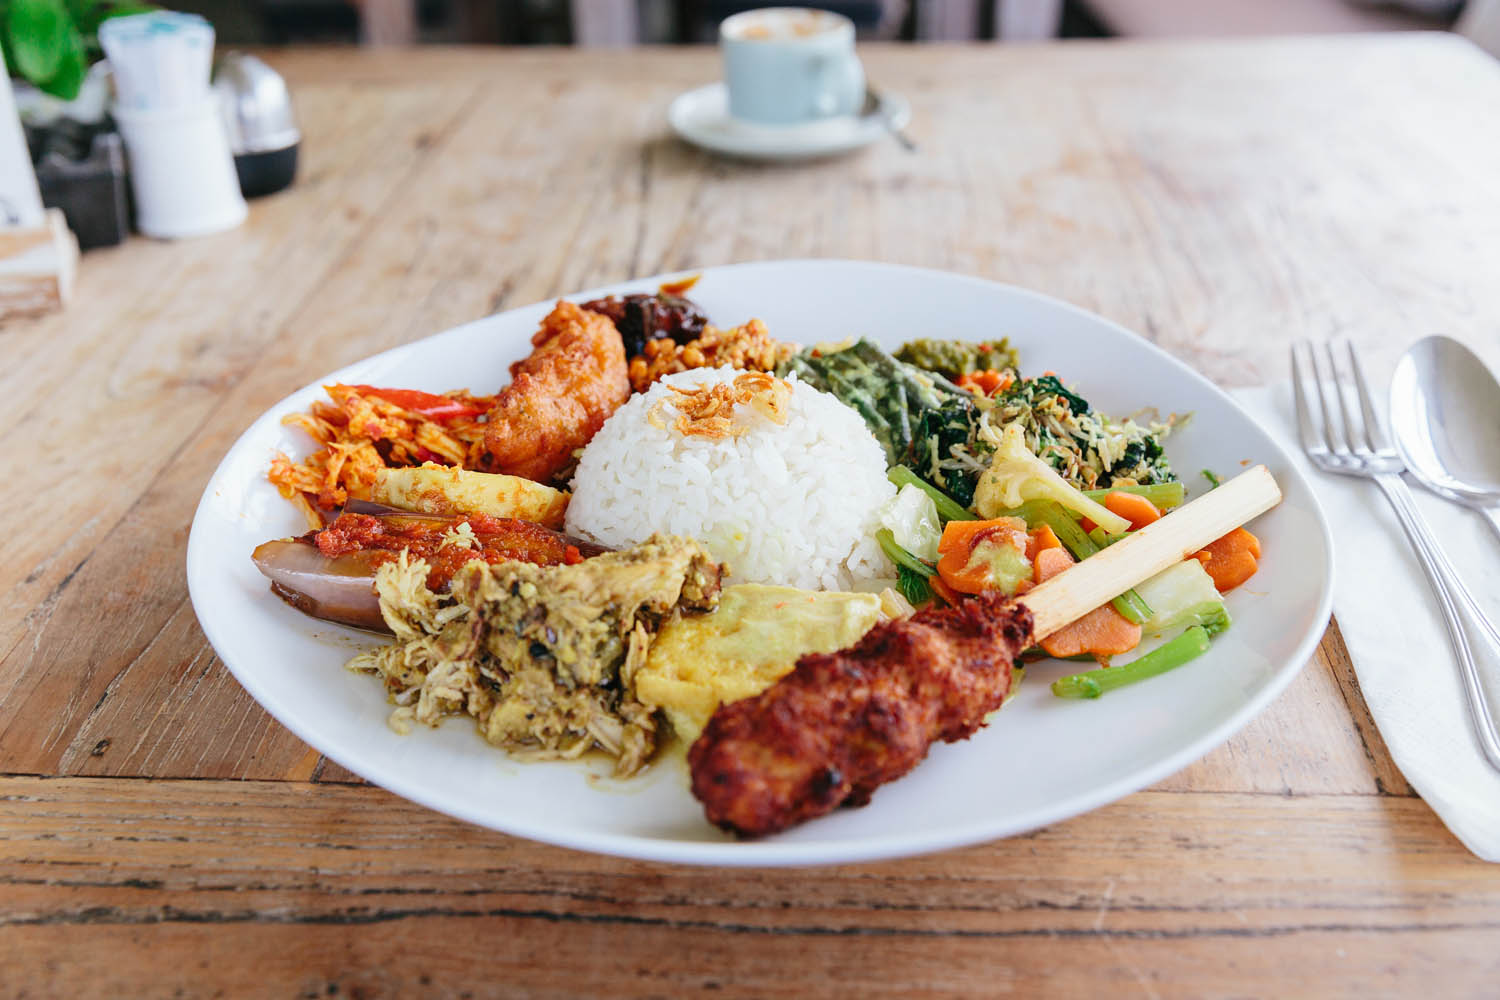 The local dish 'Nasi campur'